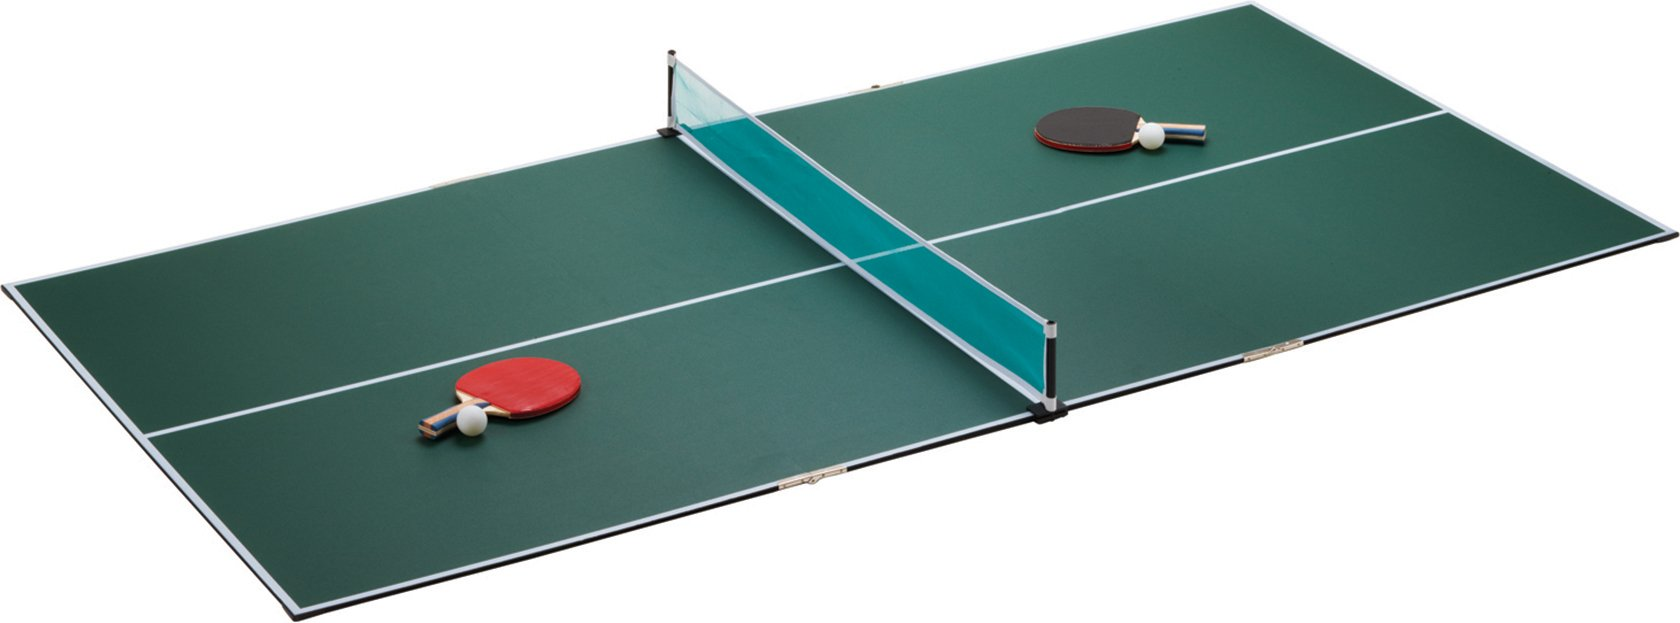 Viper Portable Tri-Fold Table Tennis and Game Table Top with Accessory Set by Viper